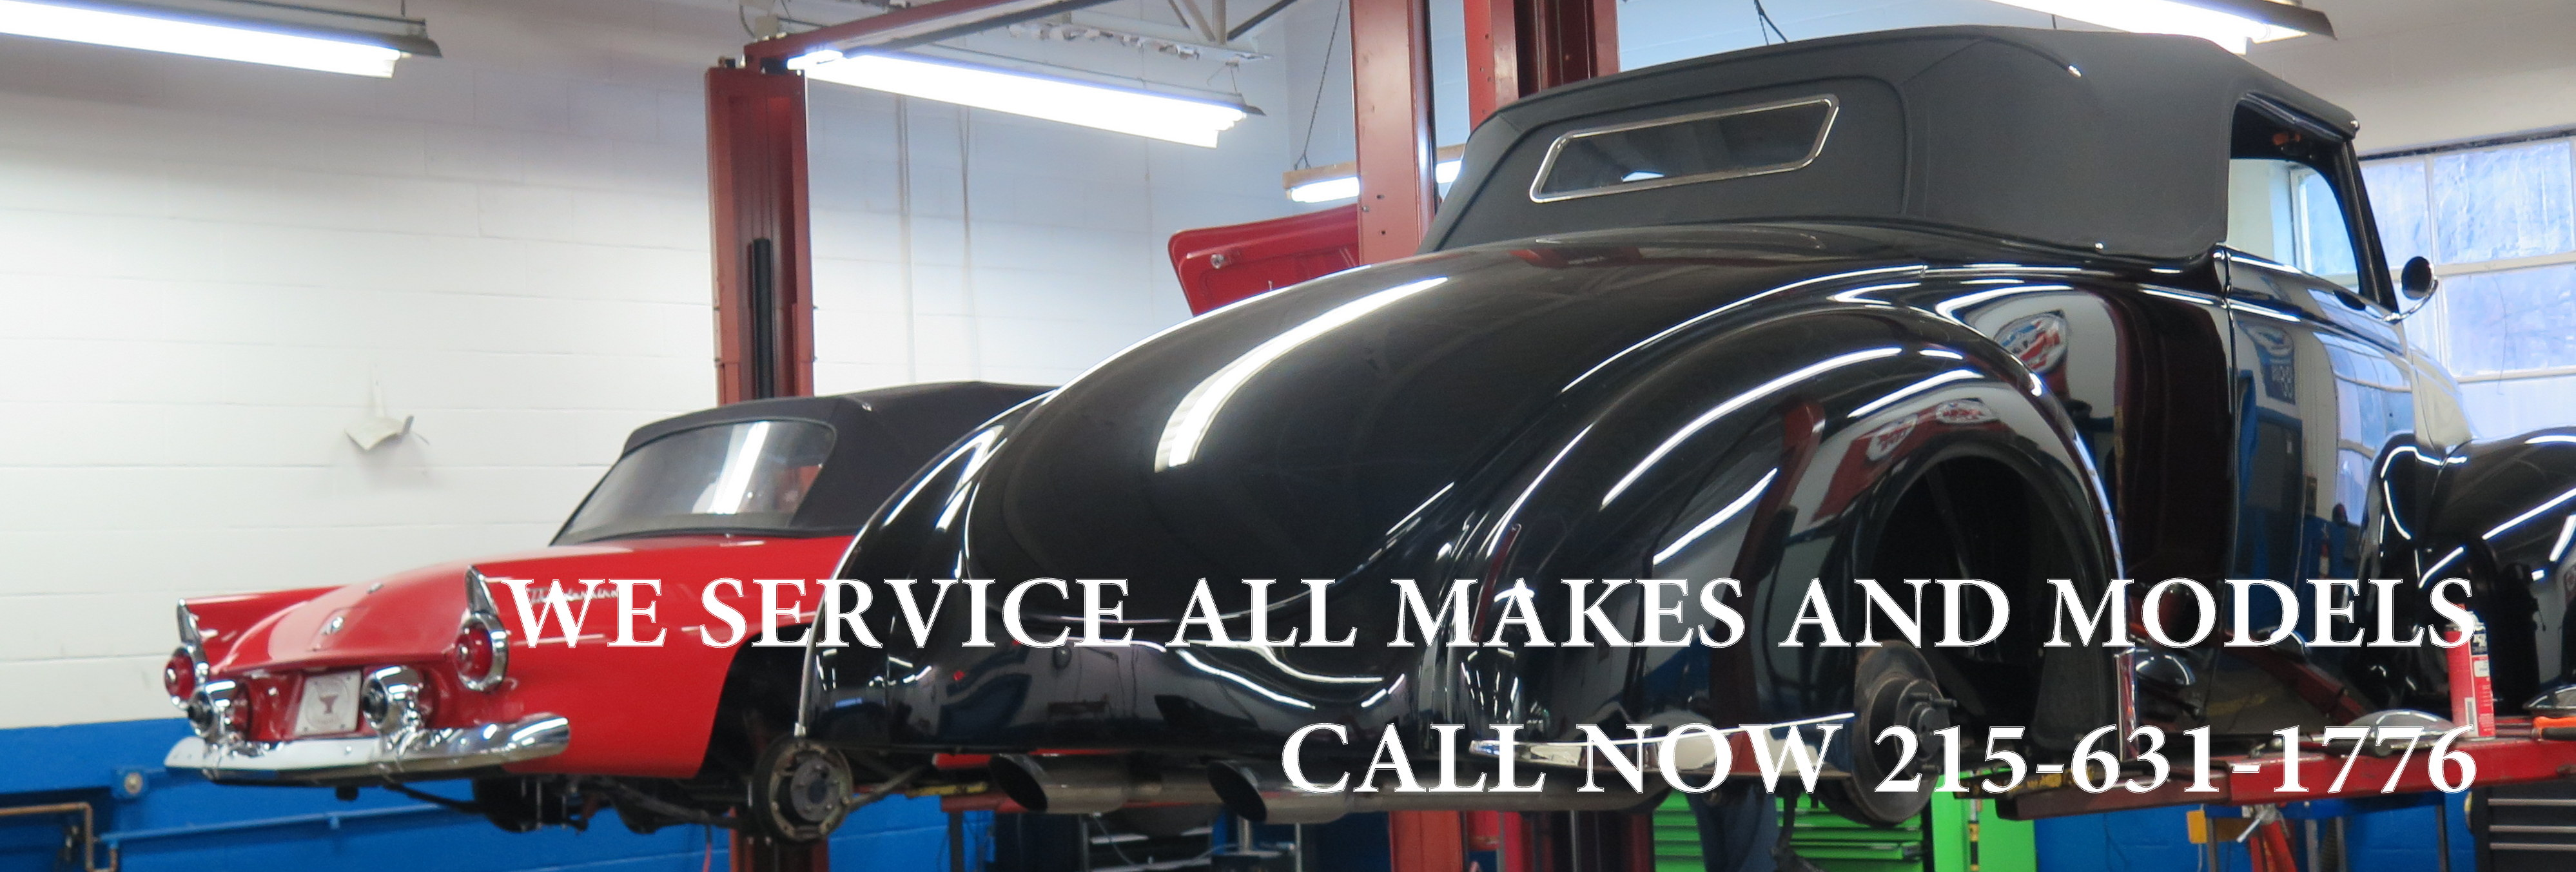 Service | OLD FORGE MOTORCARS INC